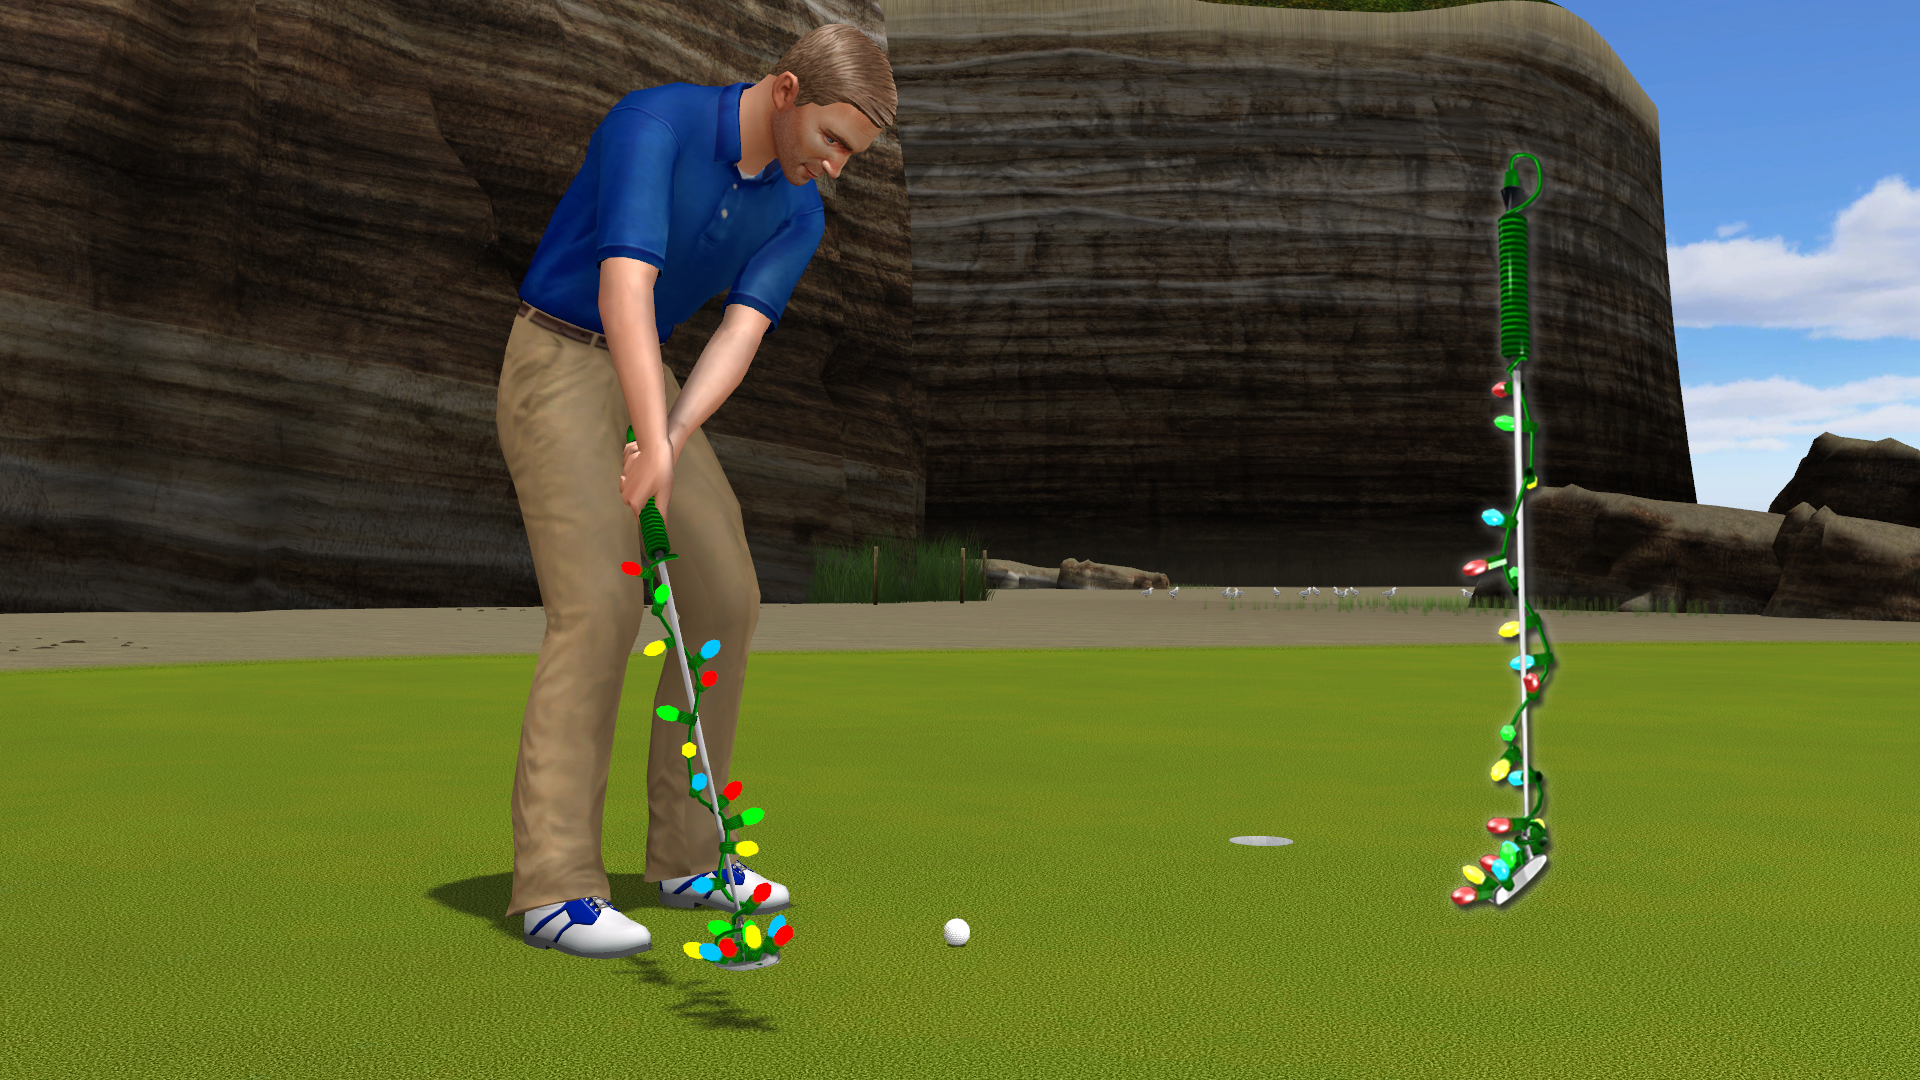 Golden Tee 2019: It's Lit Putter